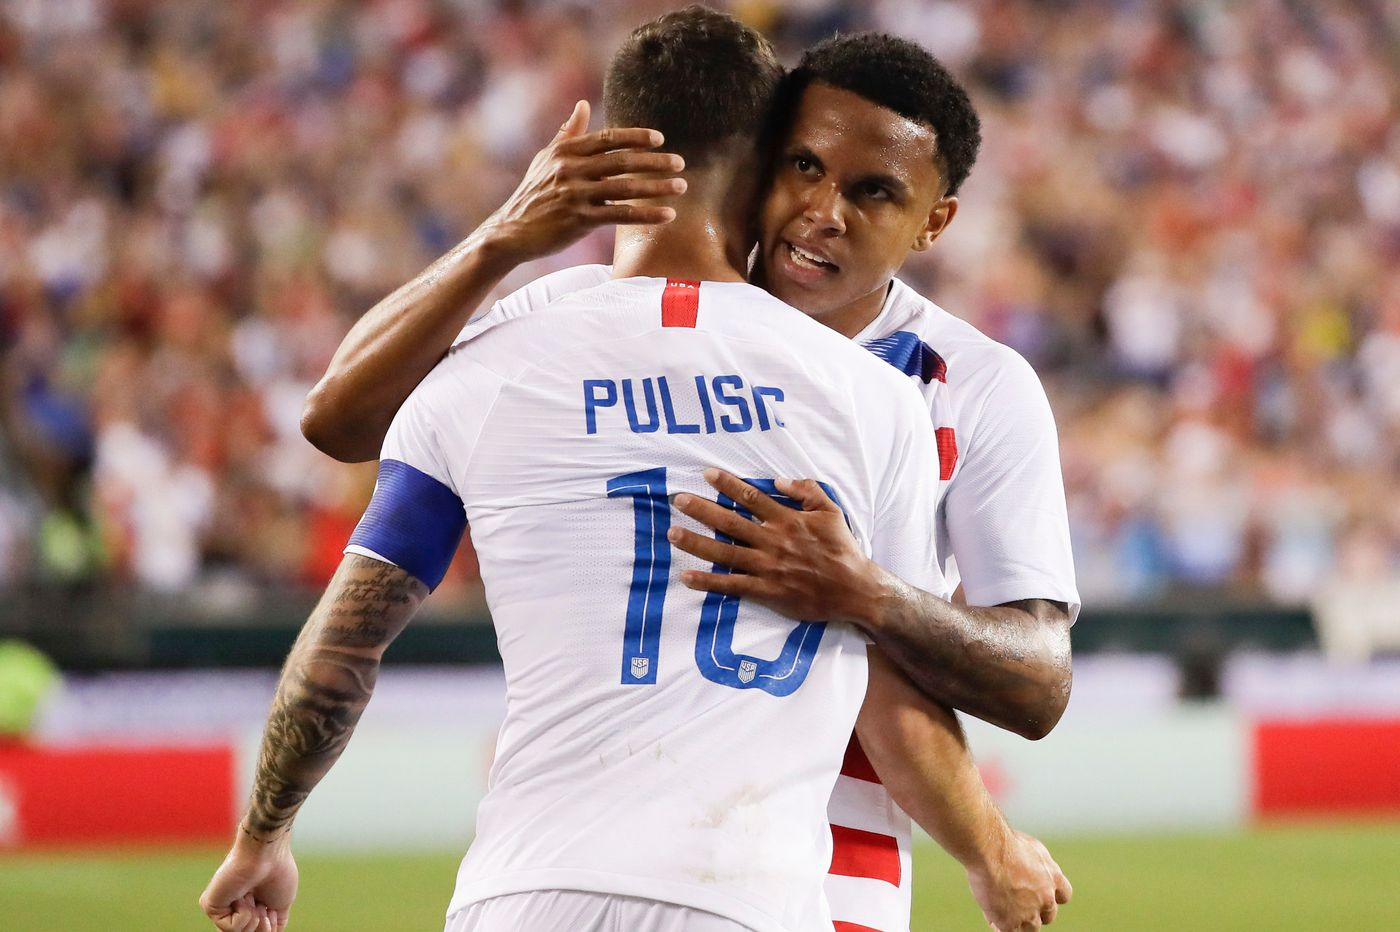 Hershey's Christian Pulisic intrigued by possibility of playing in Olympics for U.S. soccer team